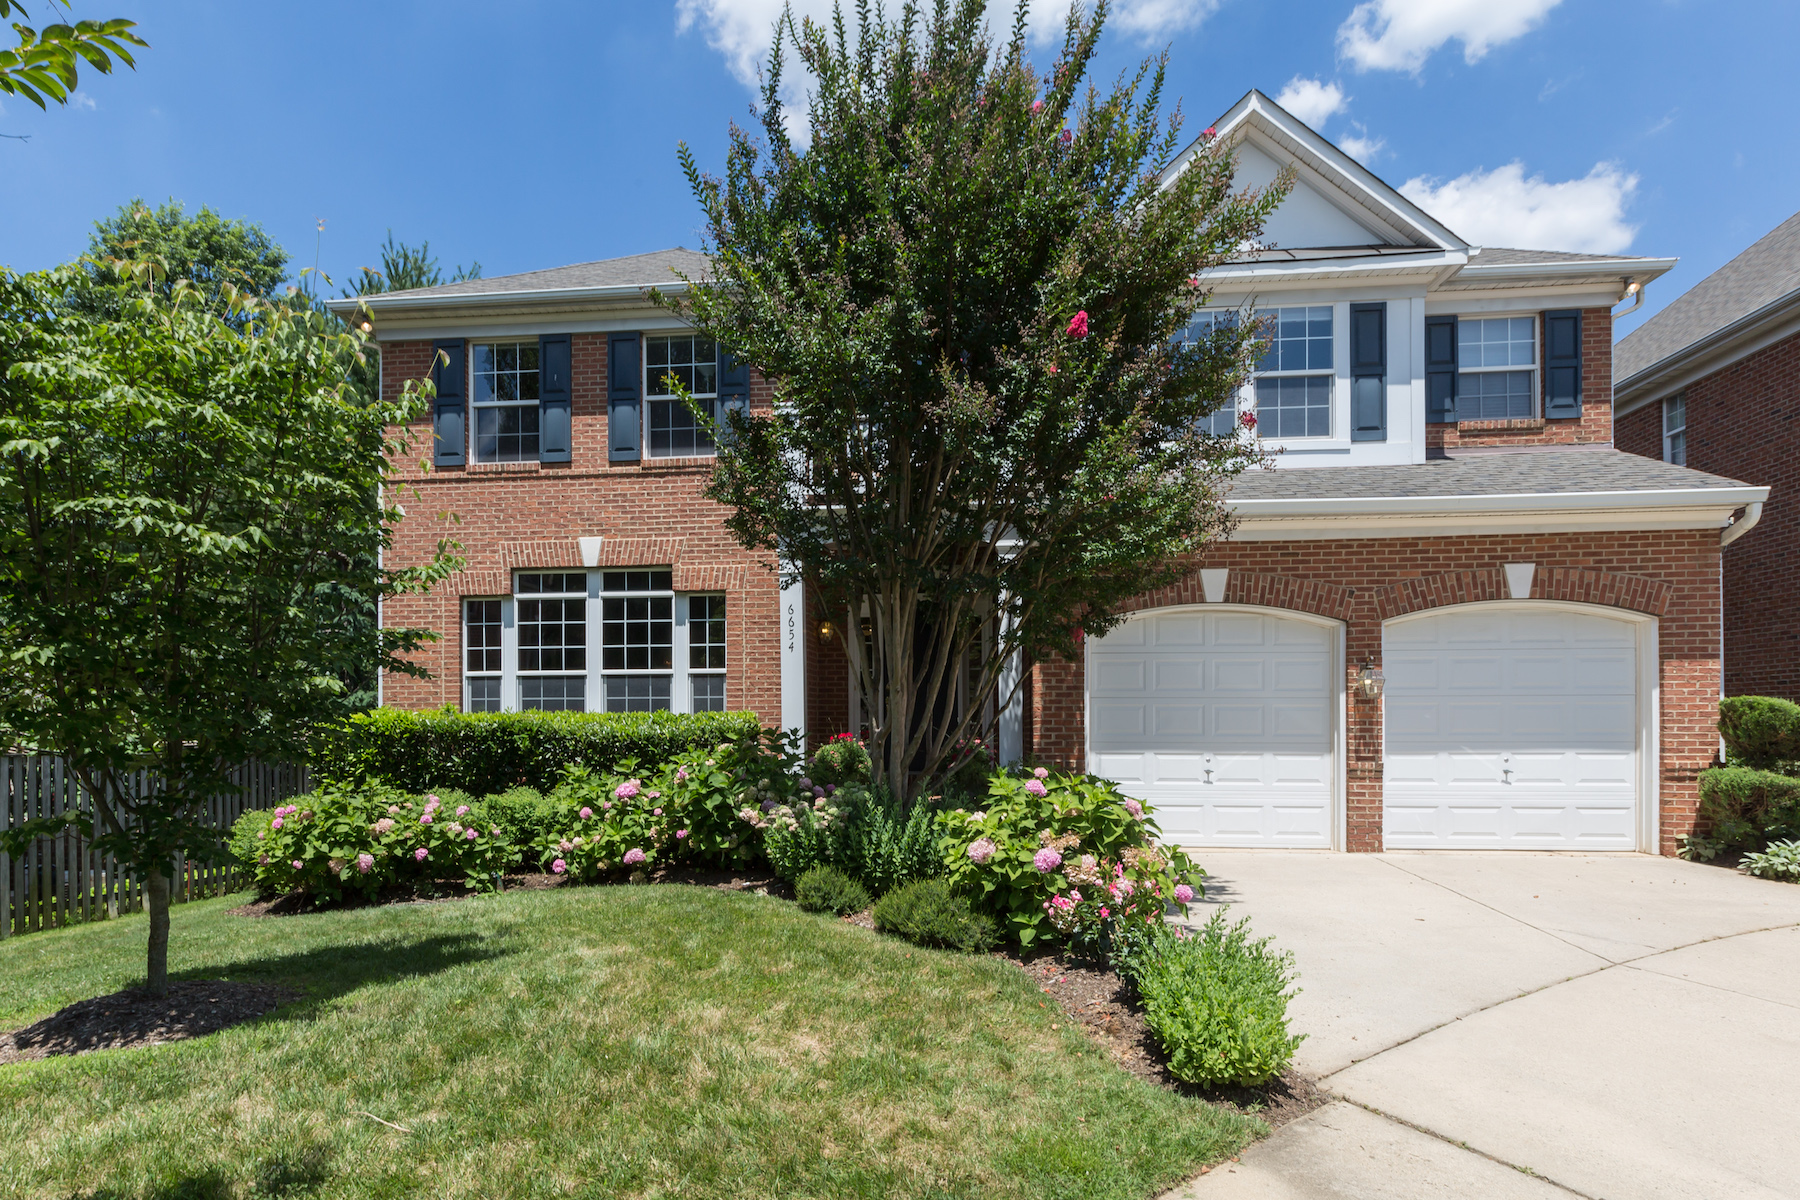 Single Family Home for Sale at 6654 Avignon Boulevard, Falls Church 6654 Avignon Blvd Falls Church, Virginia 22043 United States